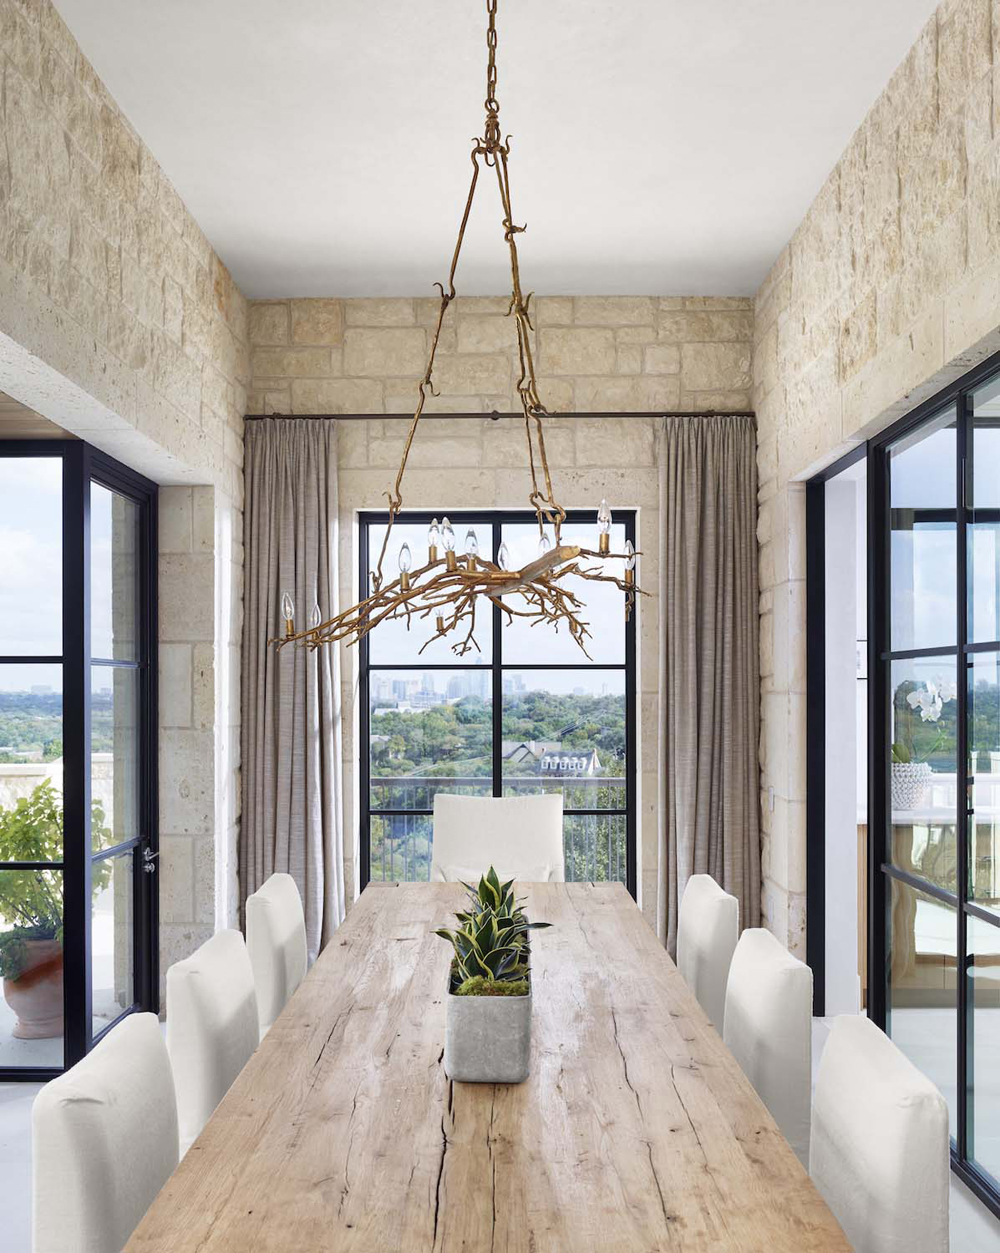 Dining room with high ceiling in a Modern Austin house.